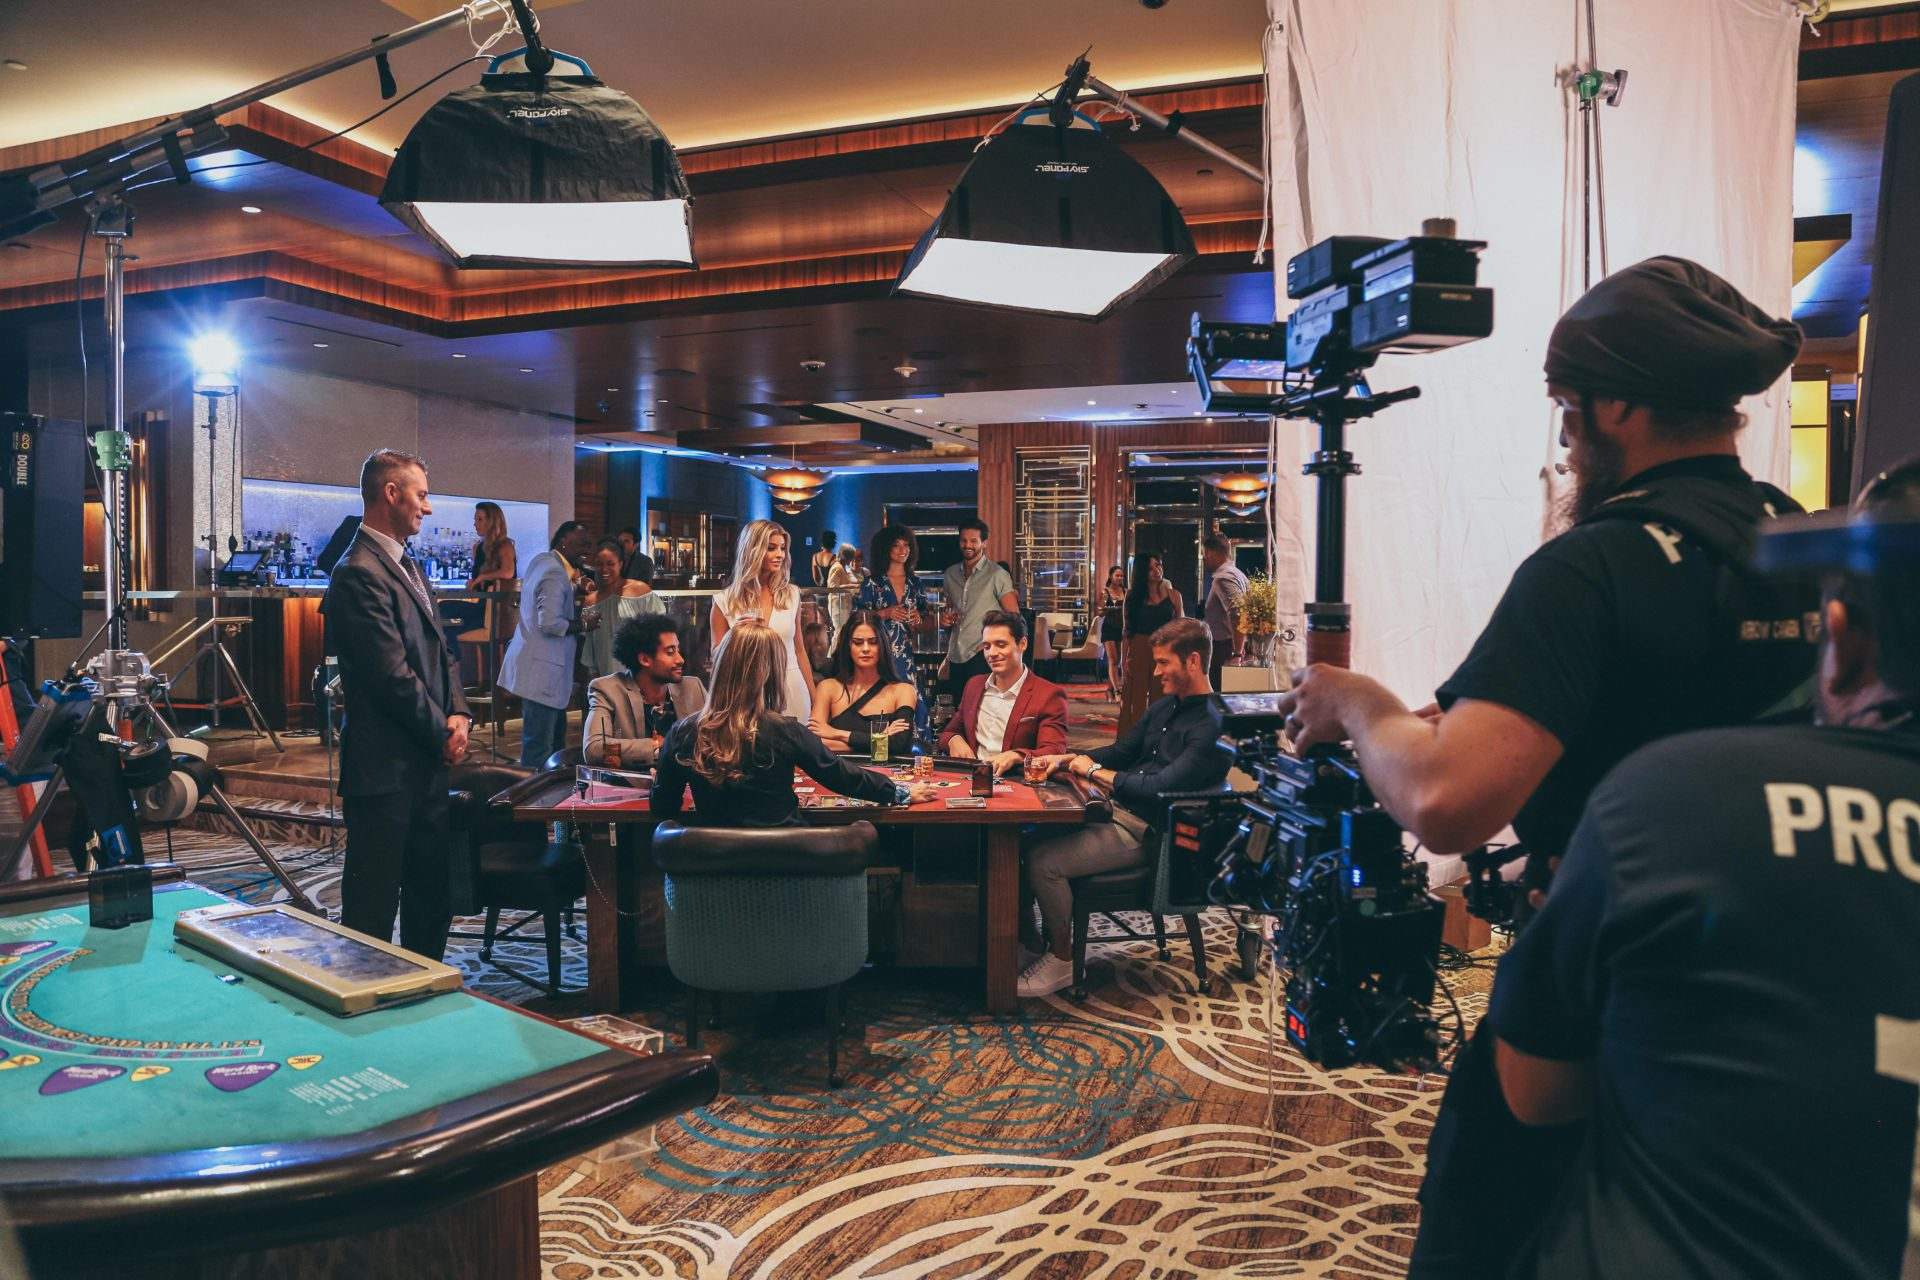 South Florida Seminole Hard Rock Hotel and Casino - Artex Productions - Top Commercial Video Production, VFX and Animation Team in Miami